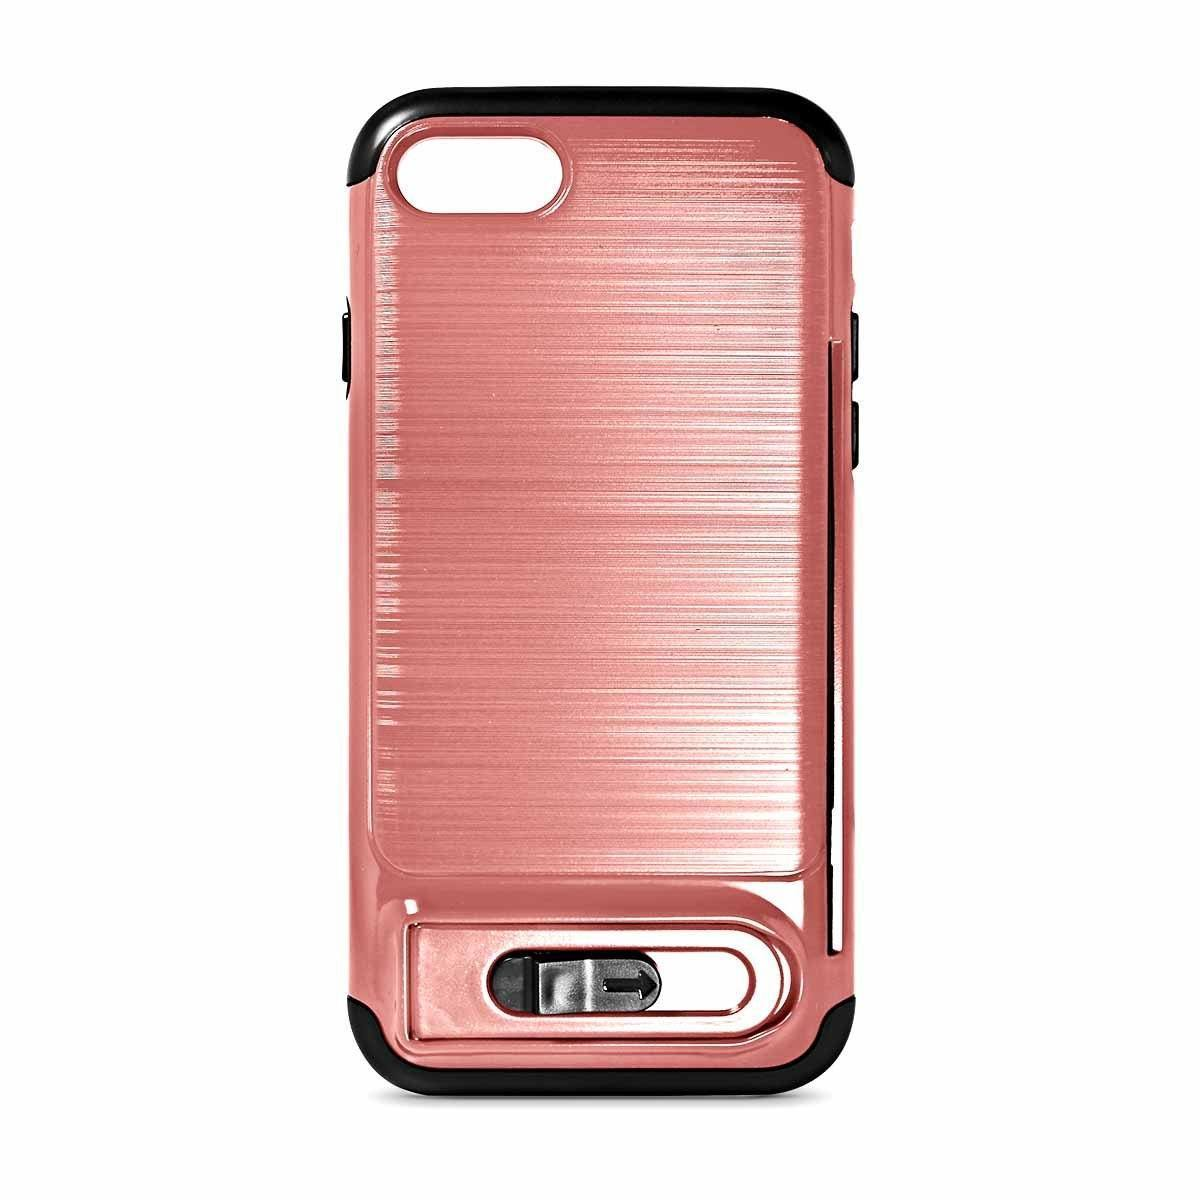 My Card Sliding Case for iPhone 6 - Rose Gold